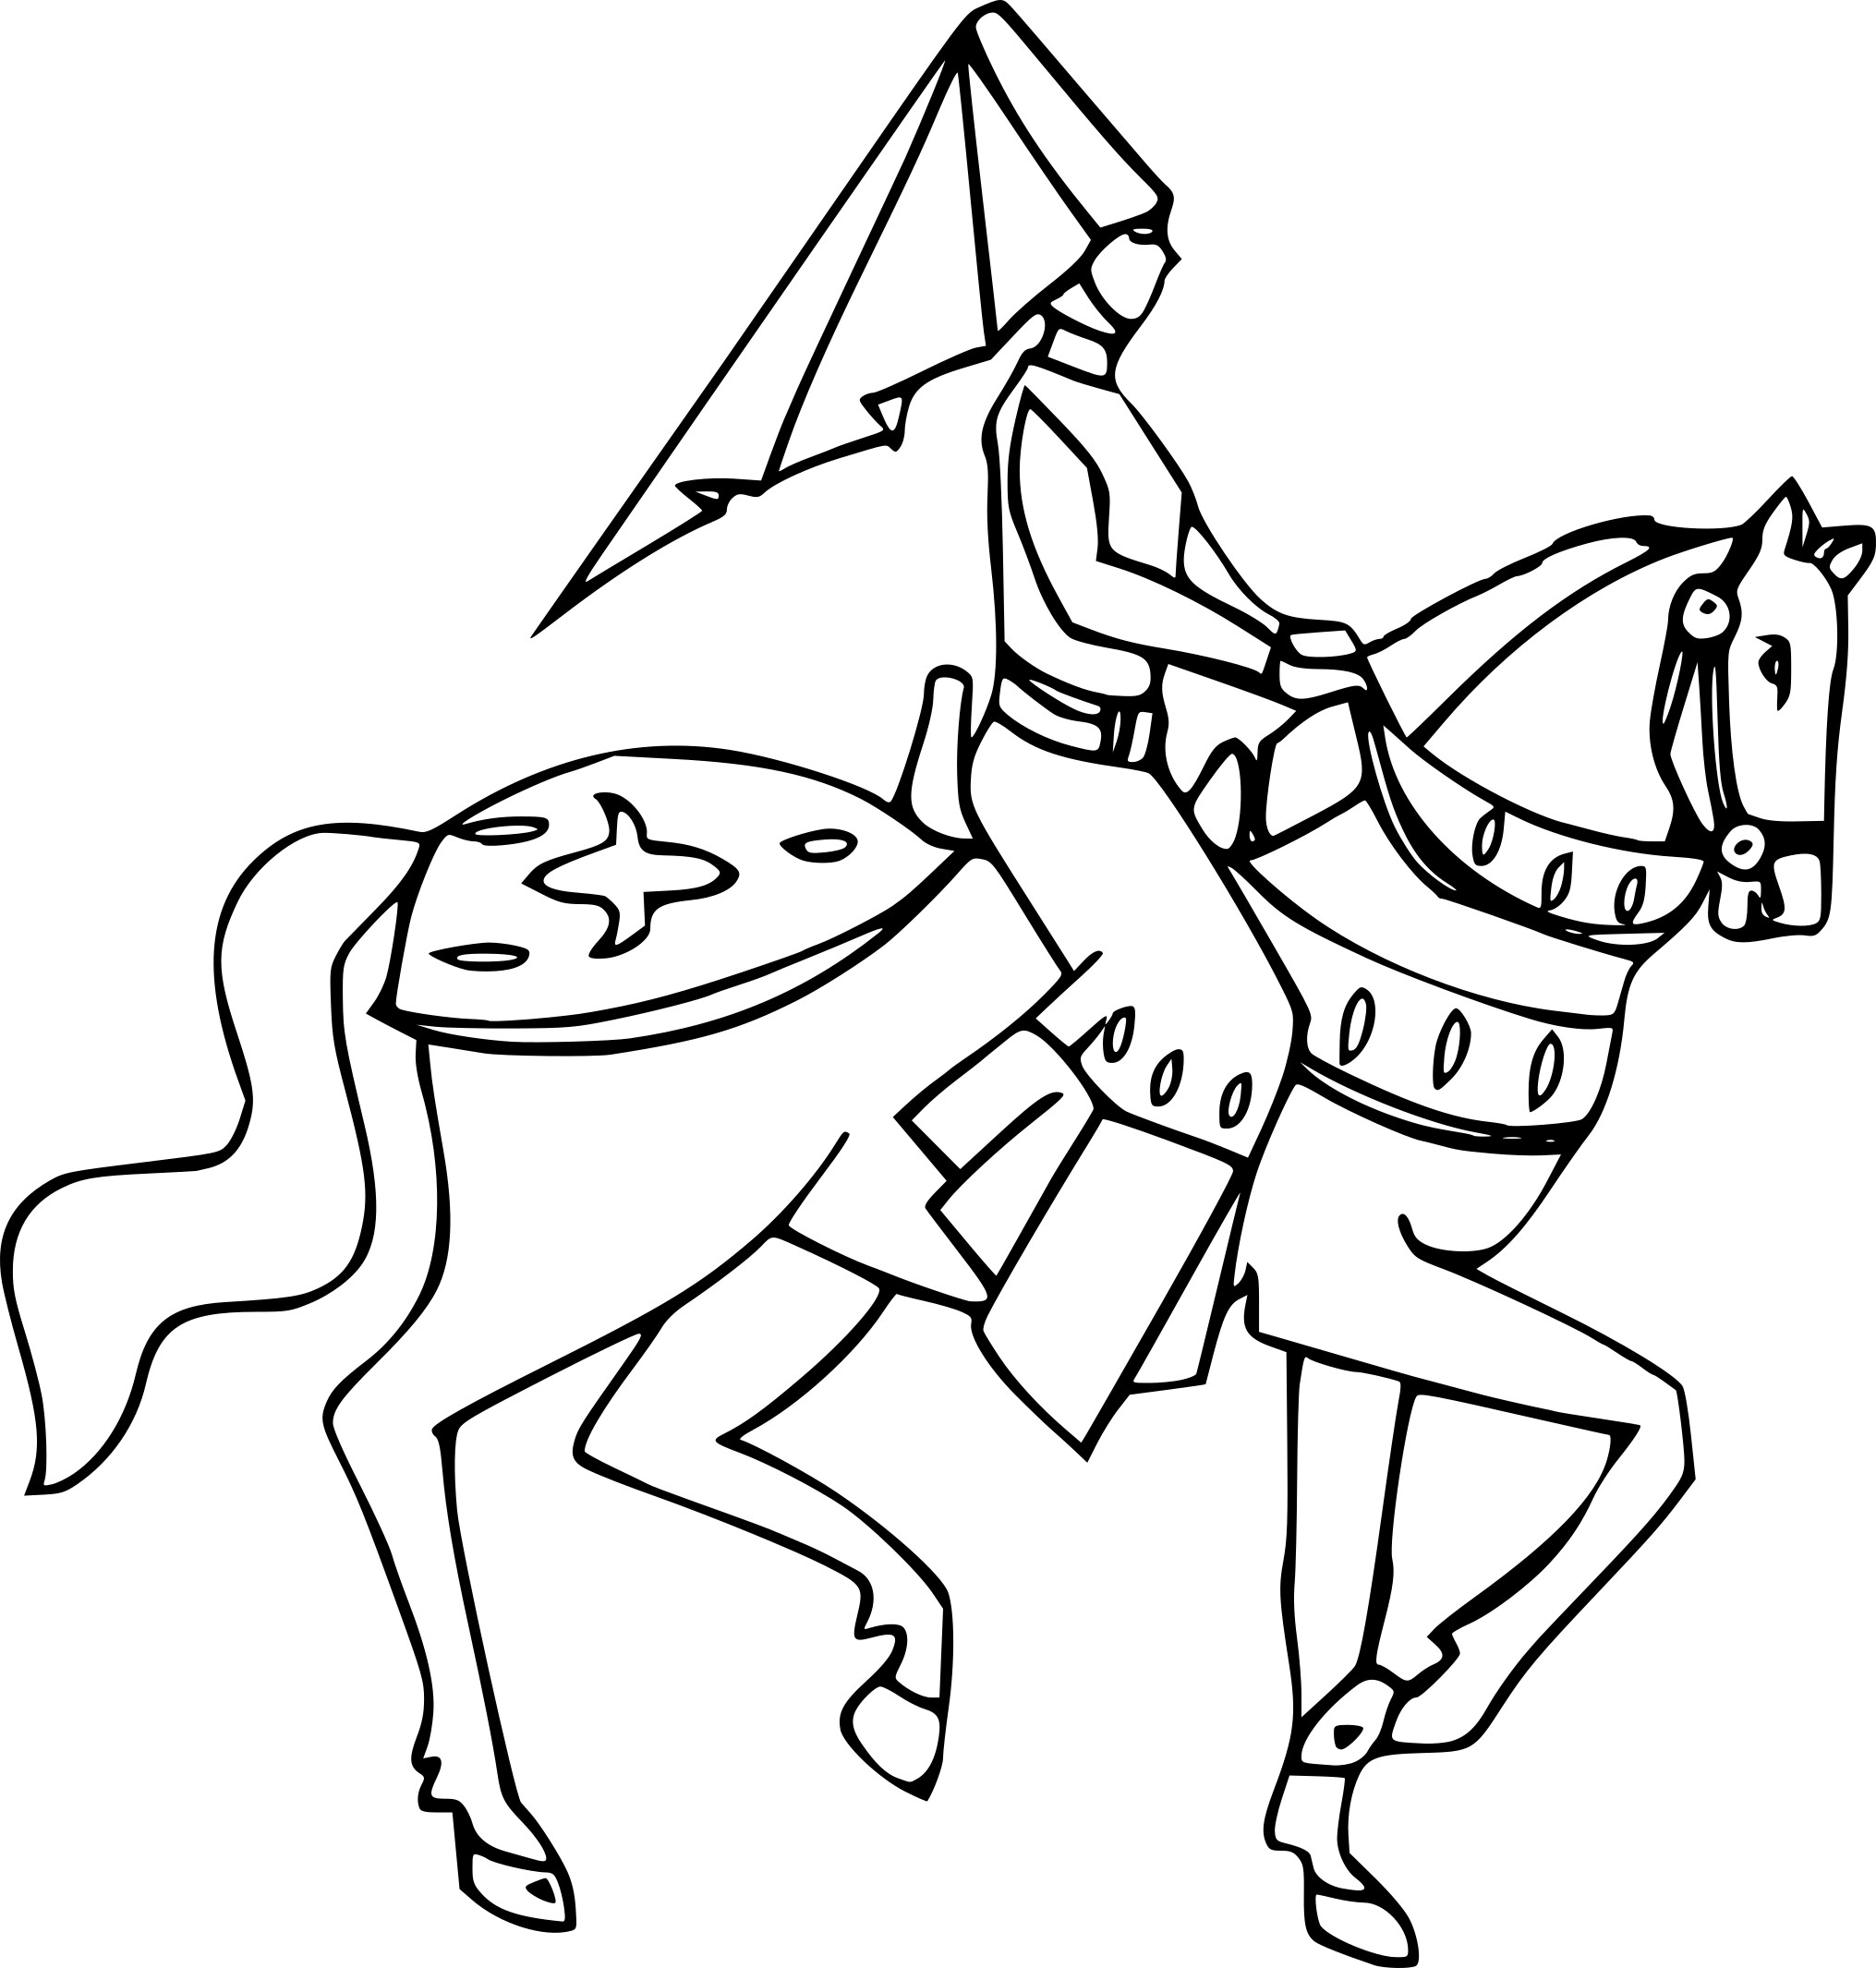 Coloriage Princesse Cheval Imprimer.Coloriages Coloriage Princesse Cheval Marnfozine Com